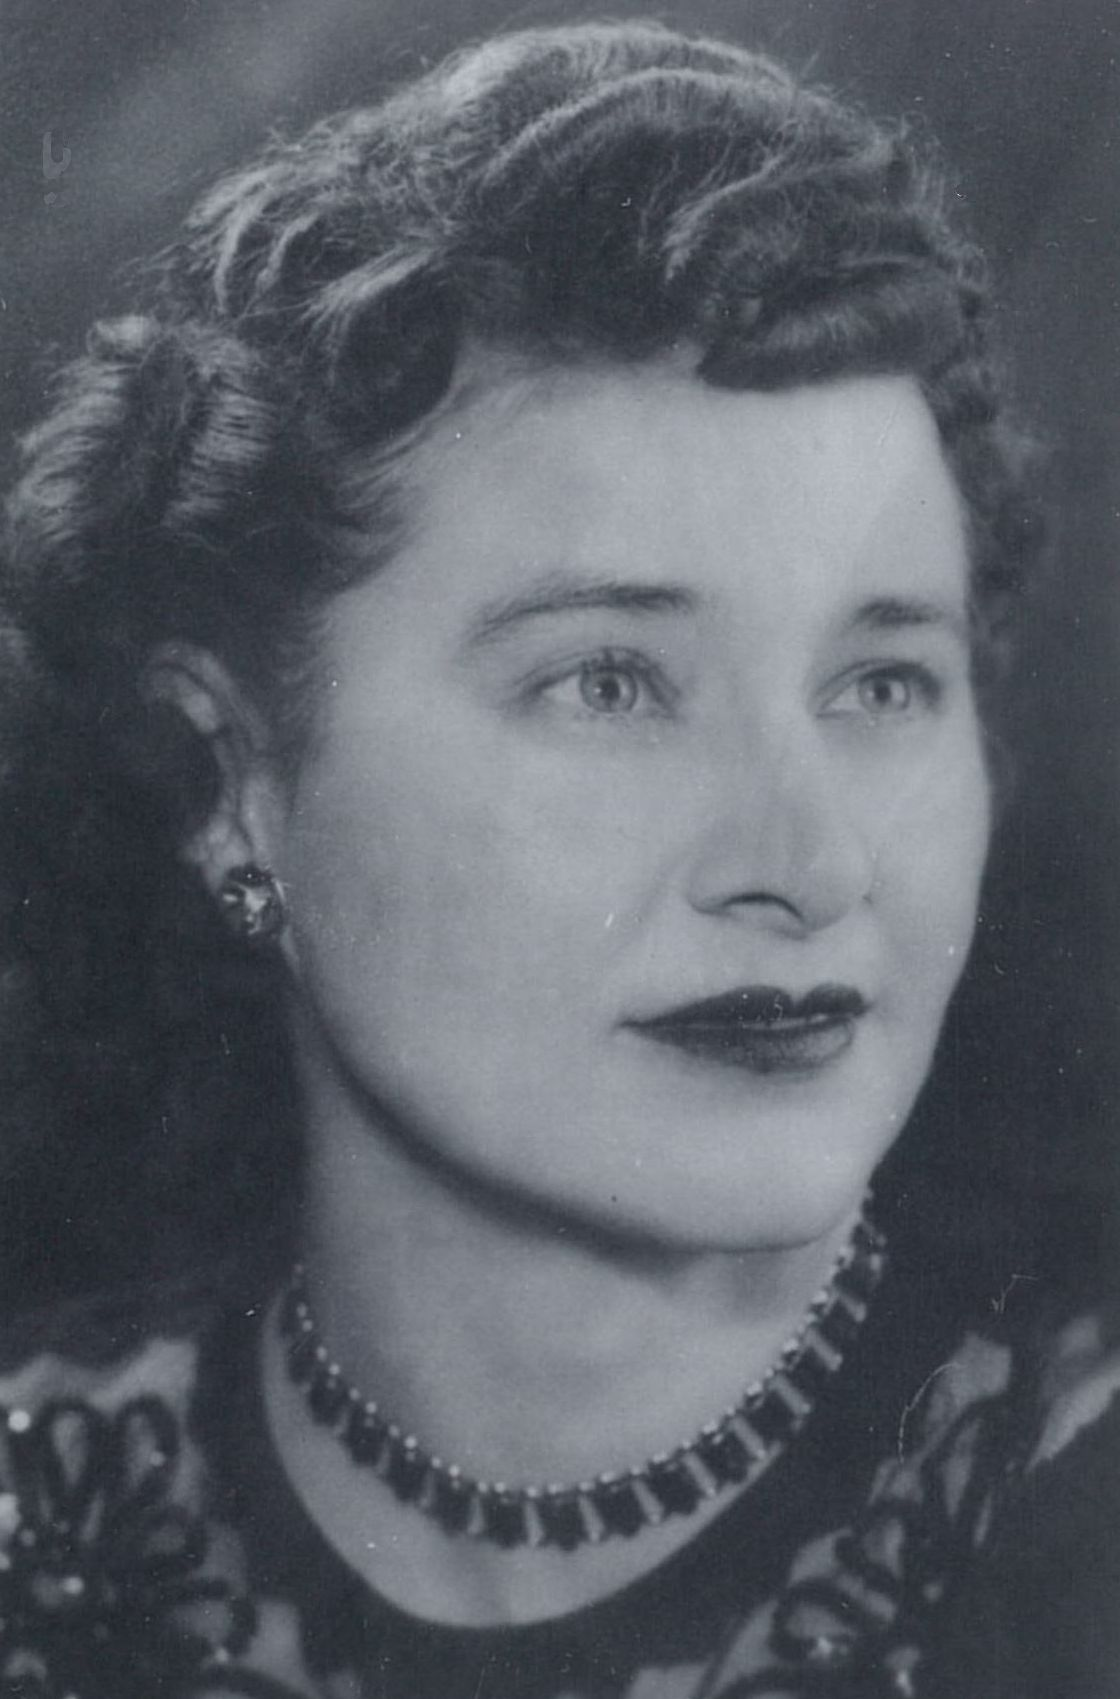 Carter, Mary Delores